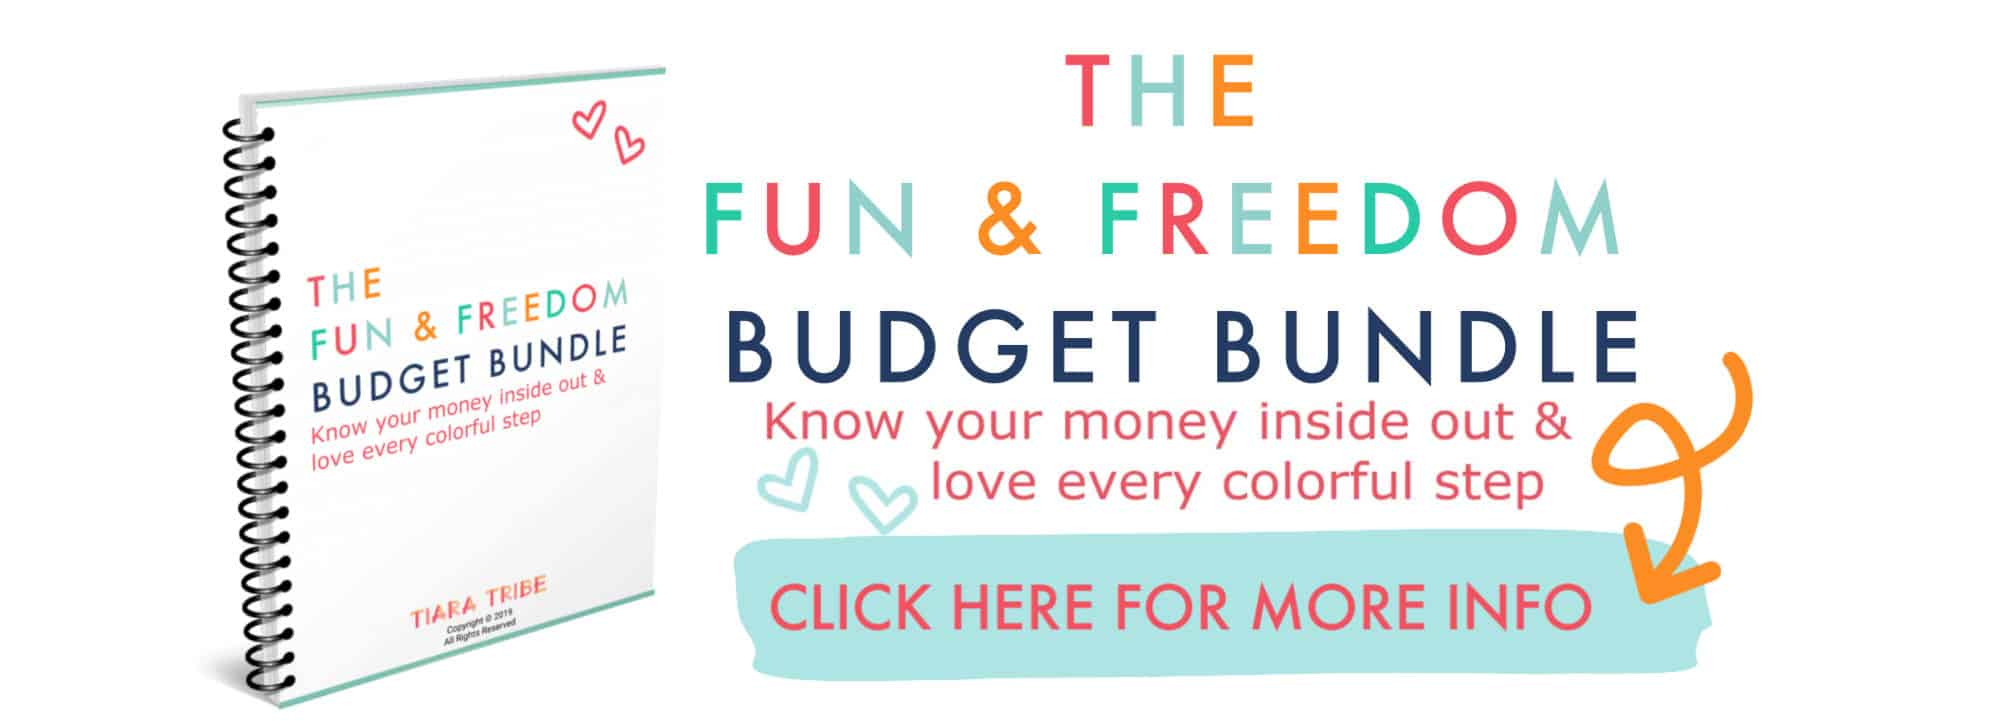 Fun and Freedom Budget Bundle Advert